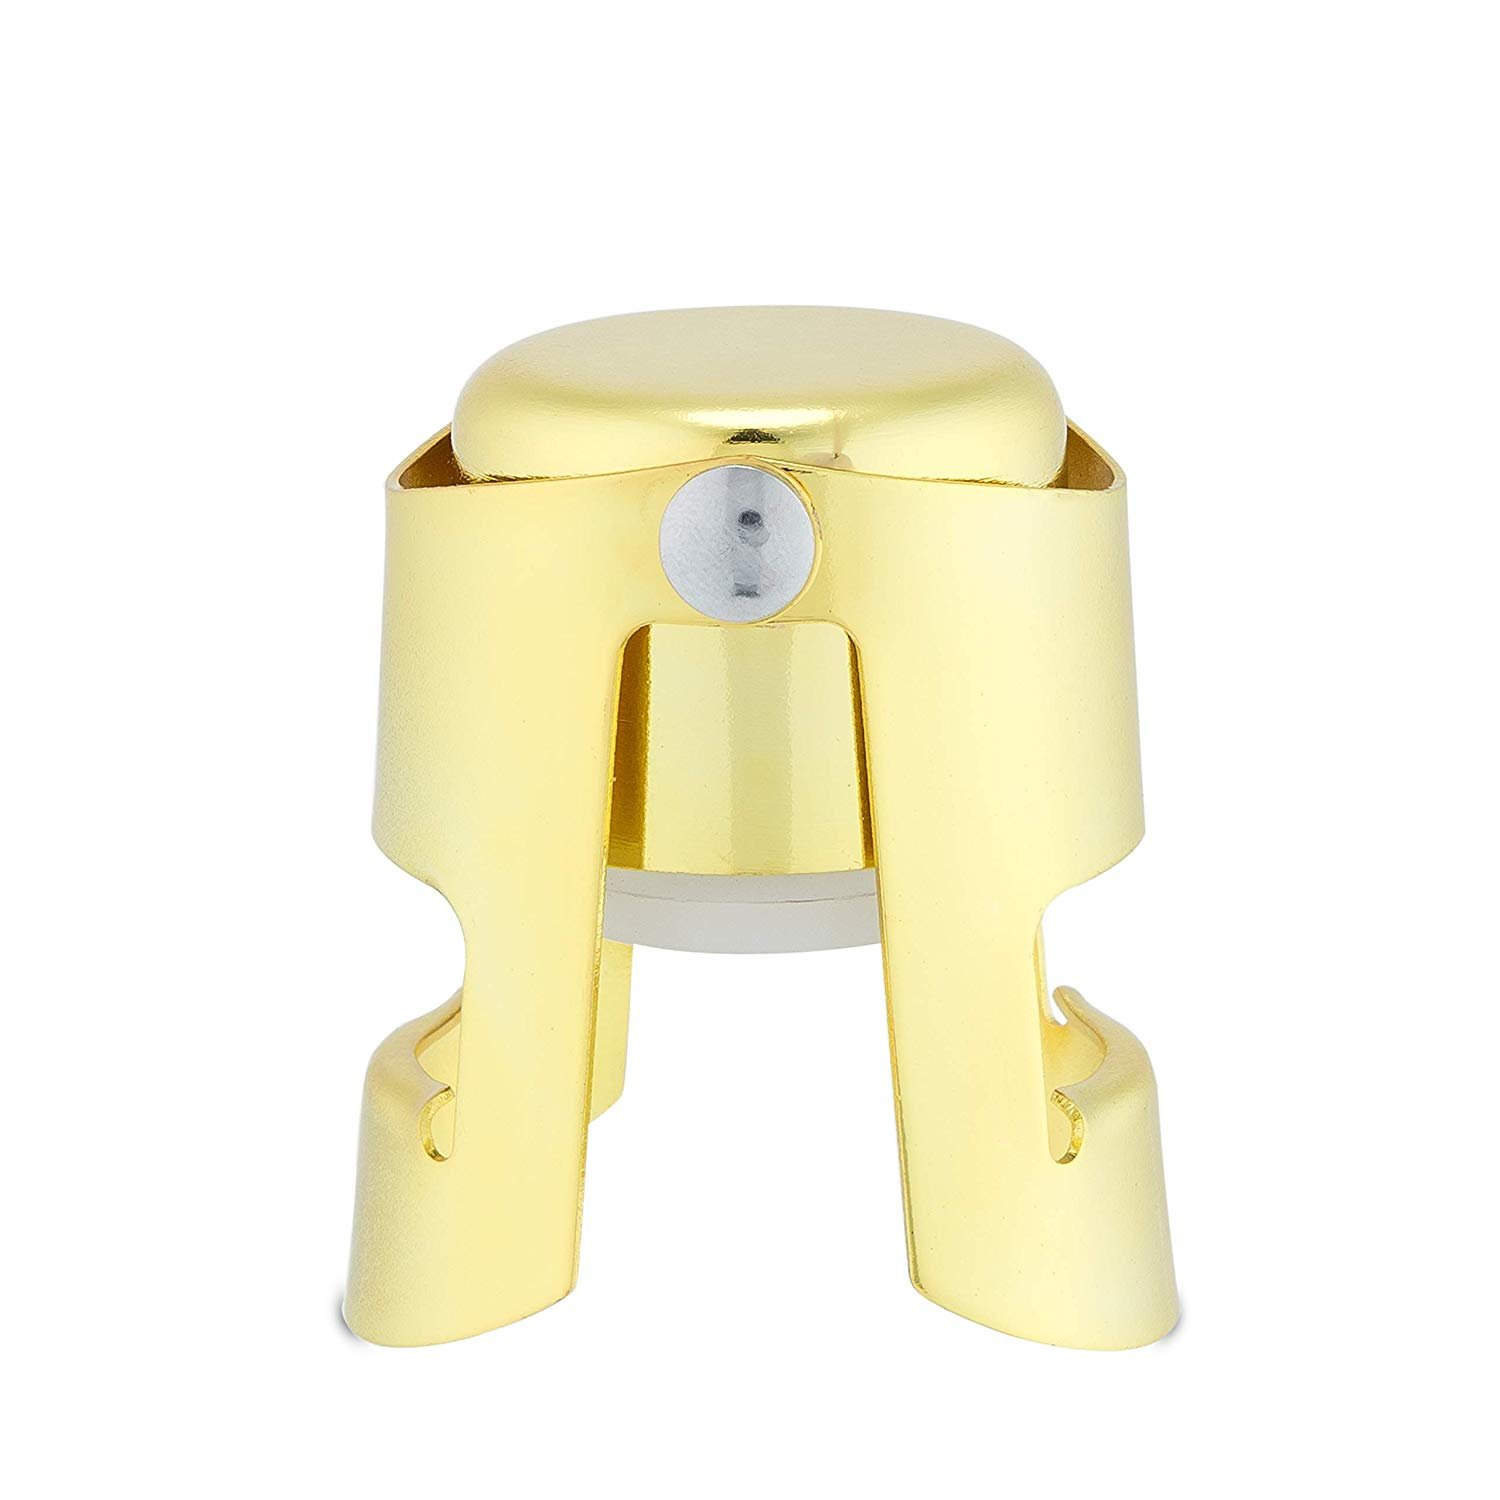 Champagne Stopper by Fizz™ Gold